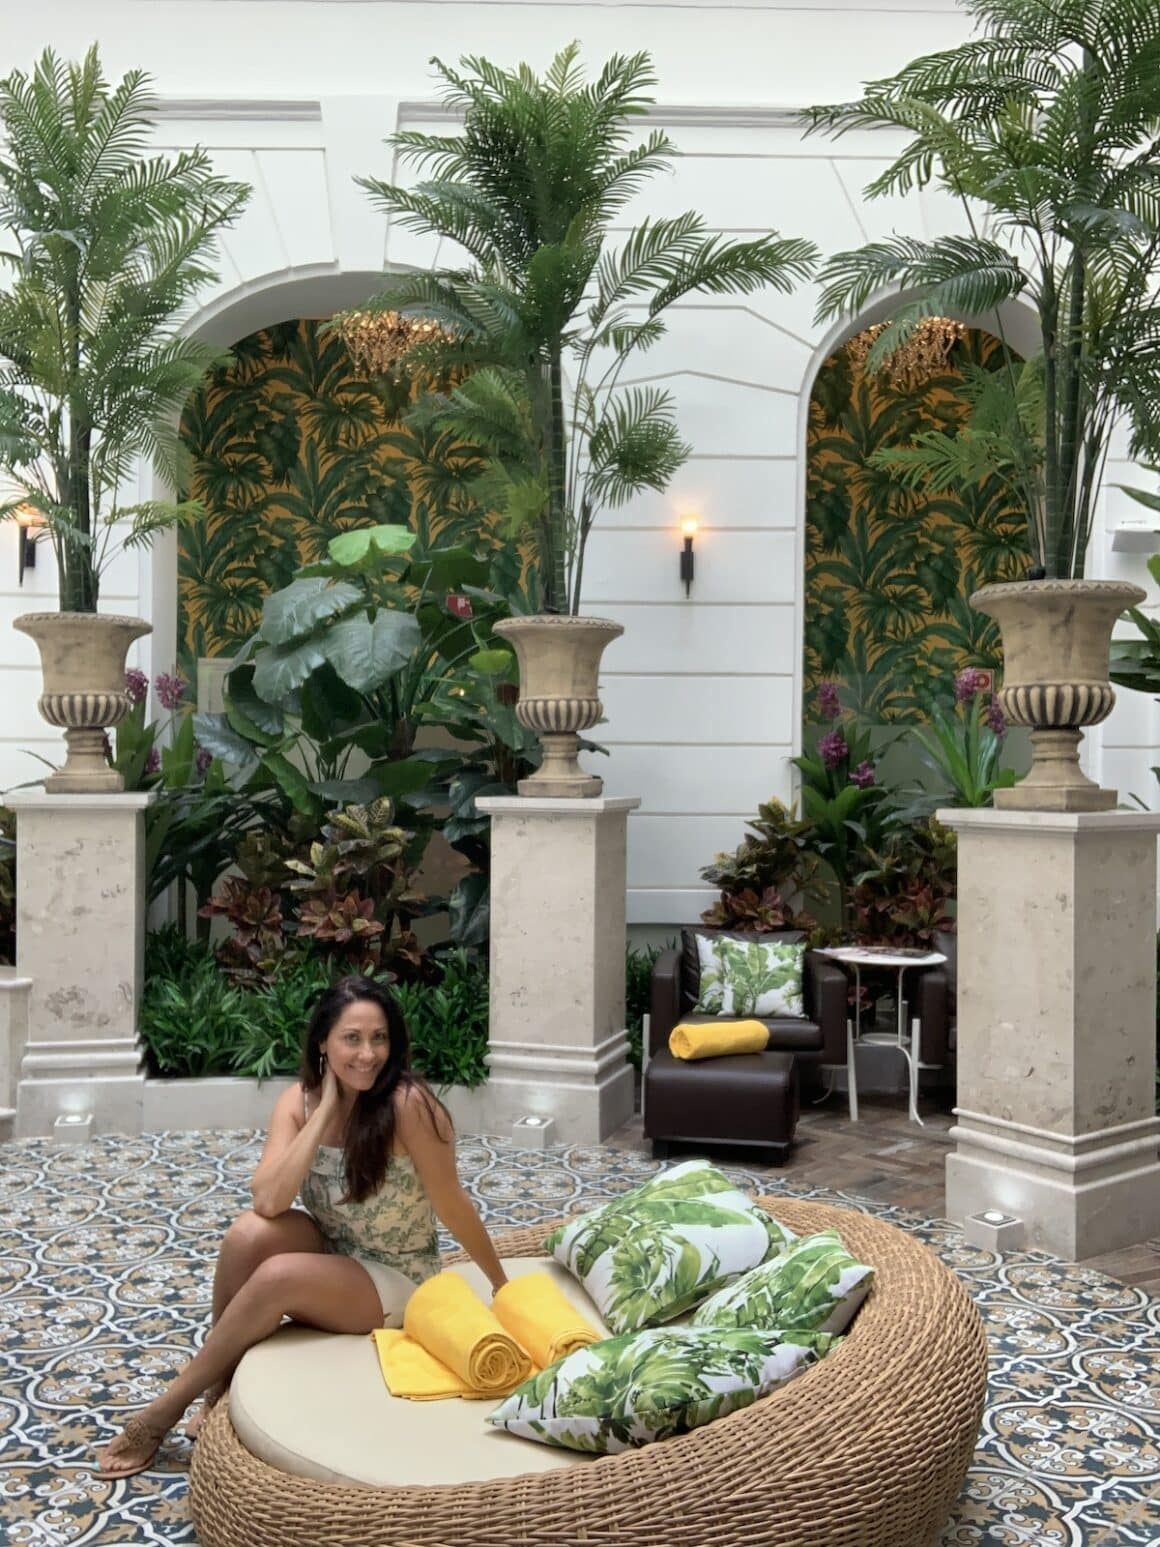 How to Choose the Right Hotel While on Vacation | The Healthy Voyager